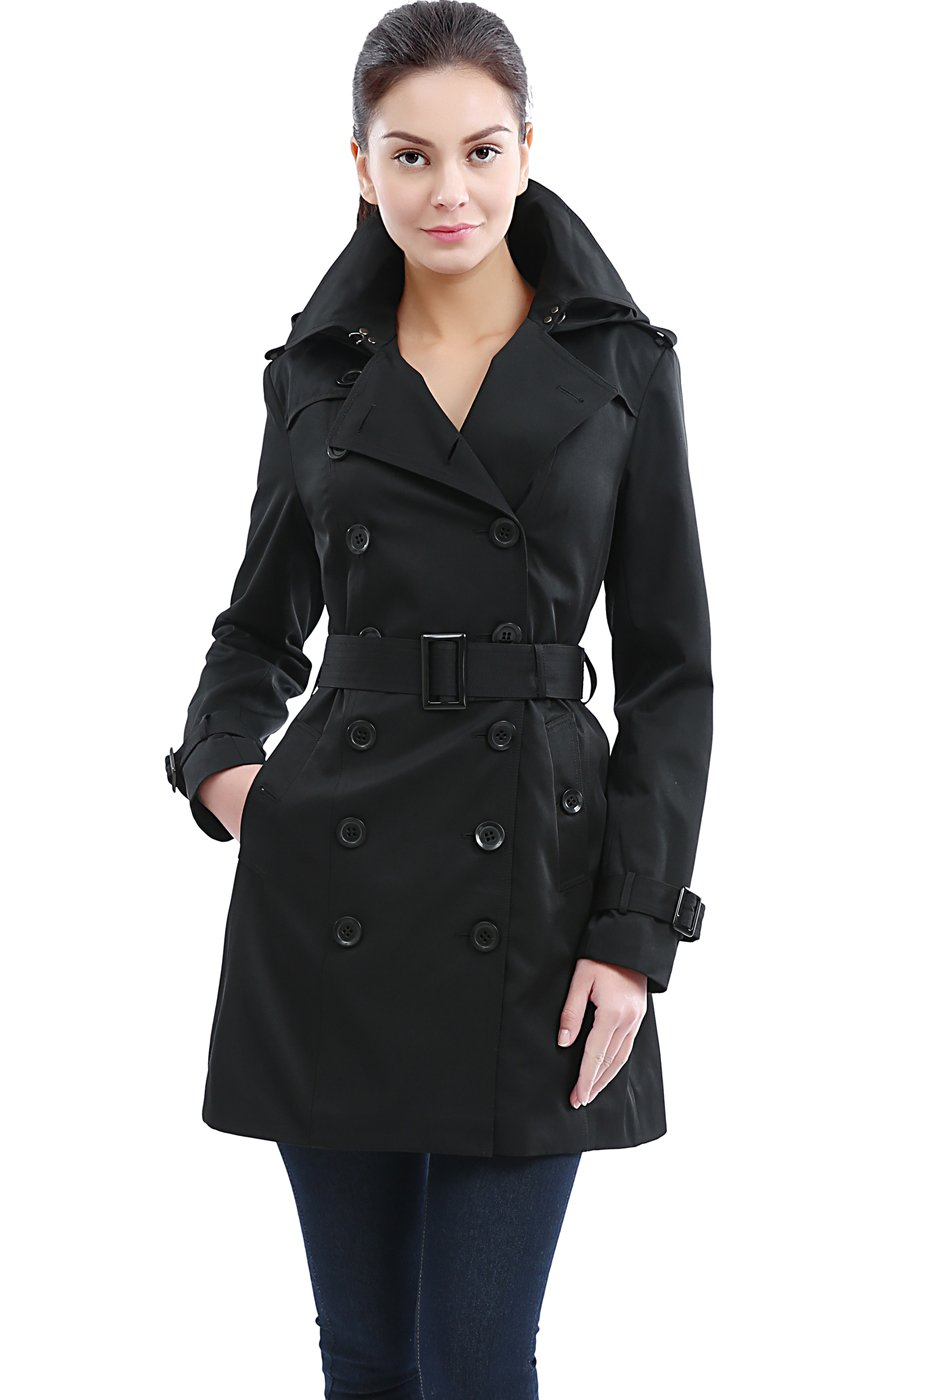 BGSD Women's Madison Waterproof Hooded Mid Length Trench Coat